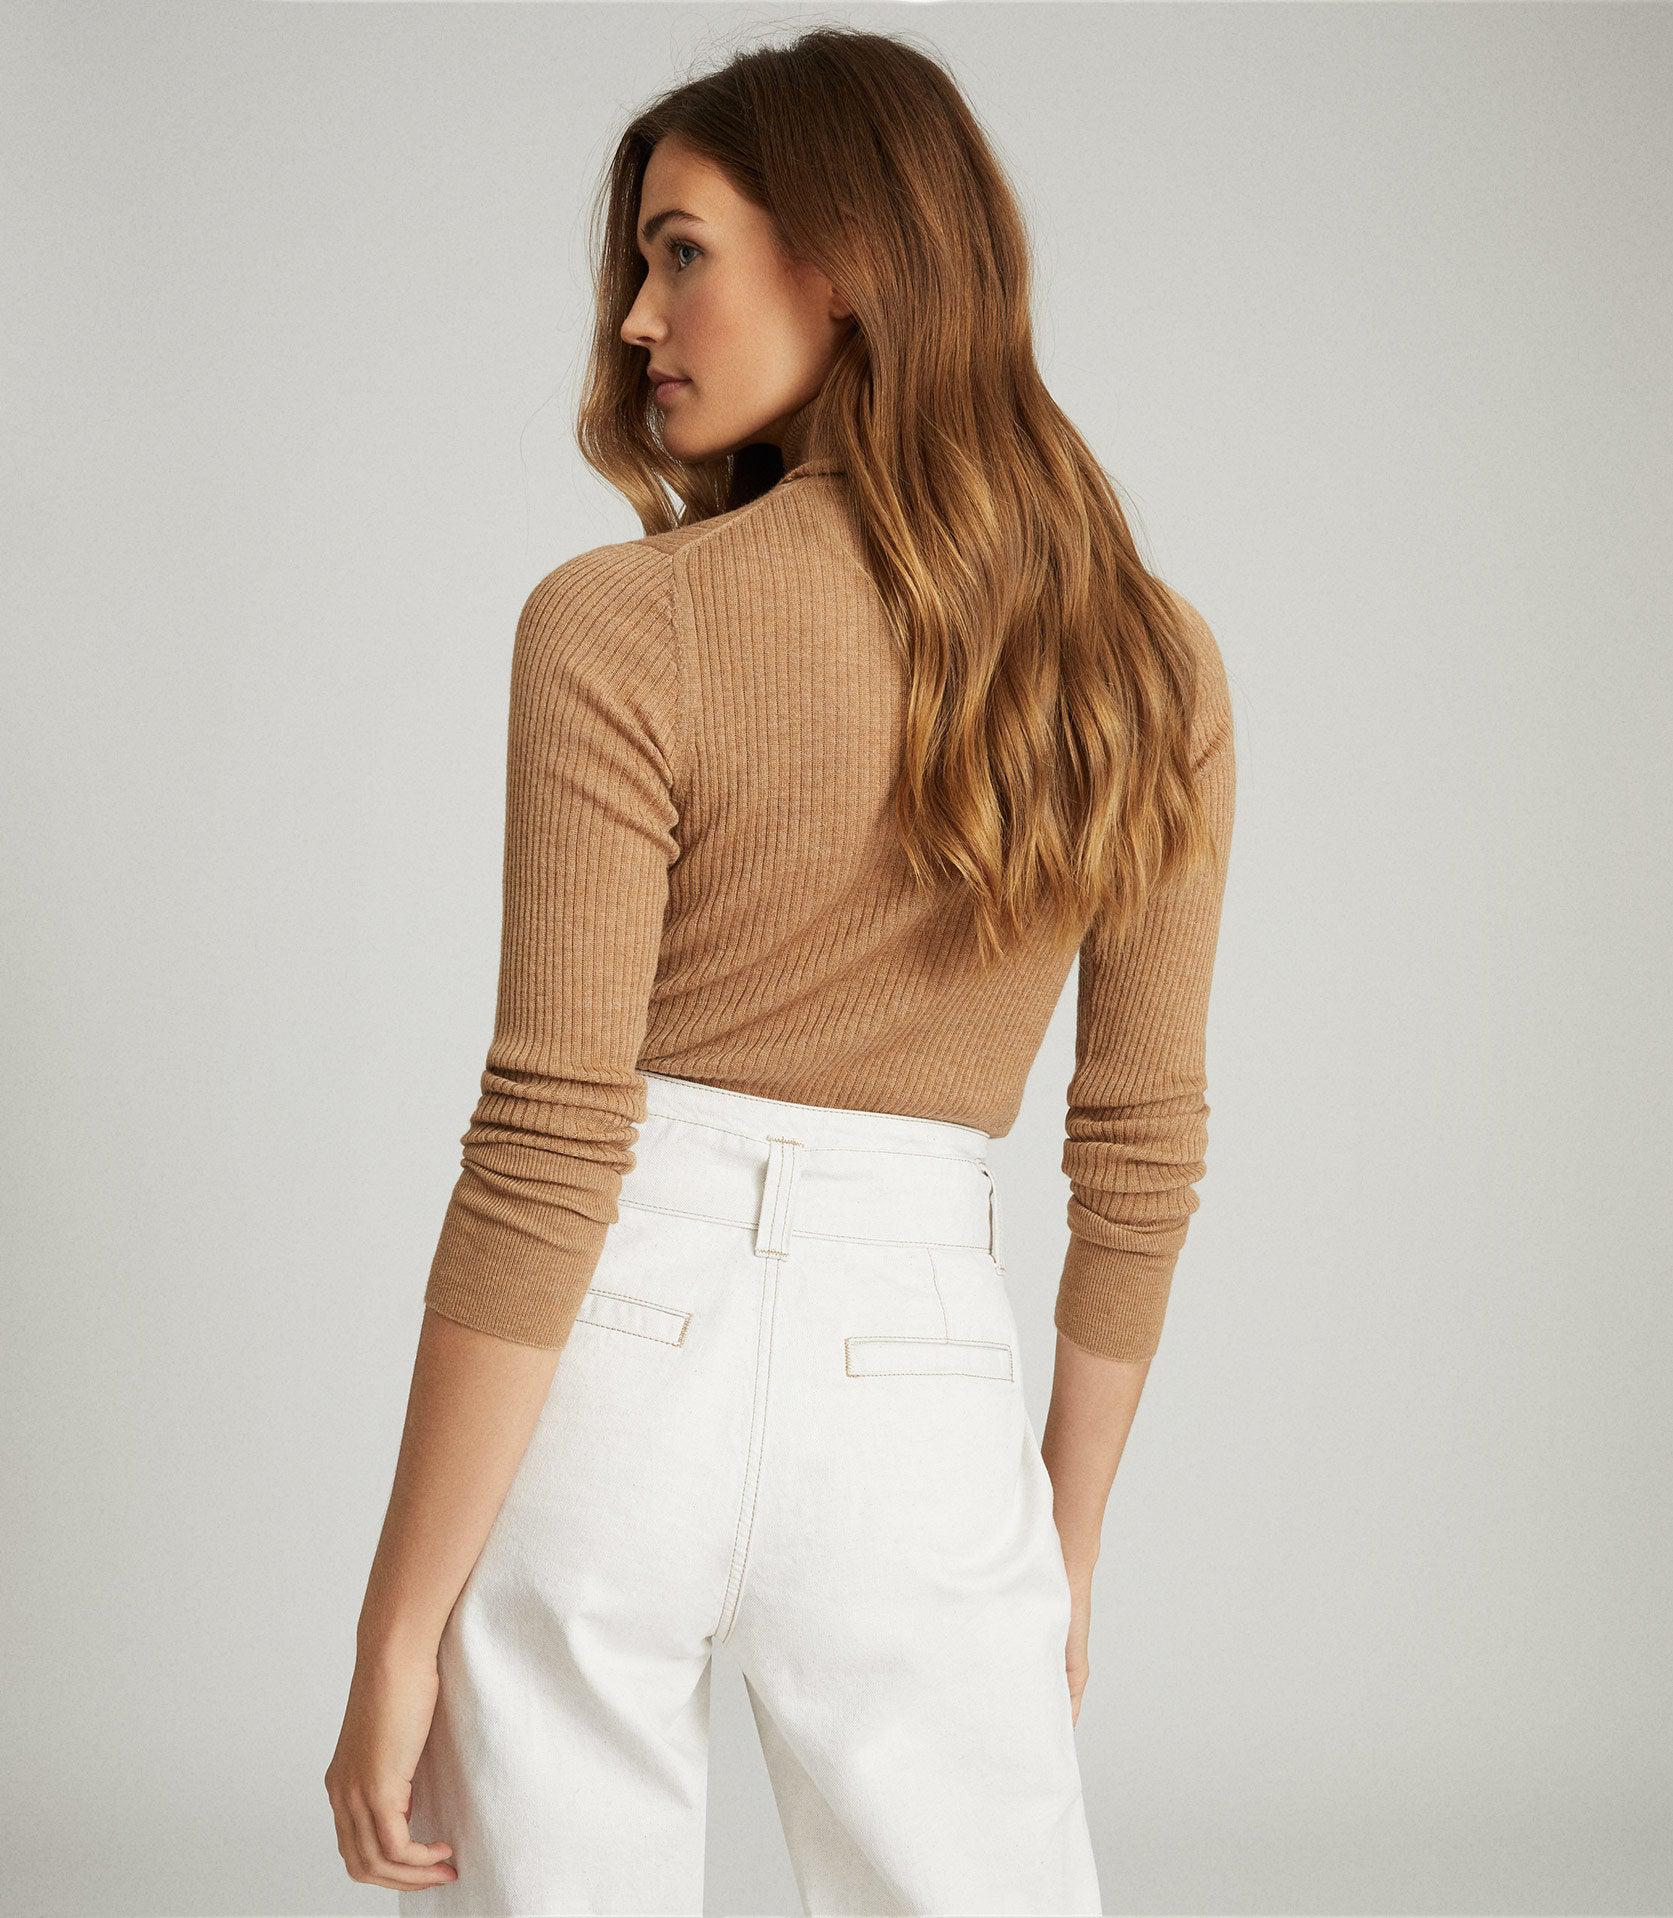 SOPHIE - KNITTED ROLL NECK TOP 2